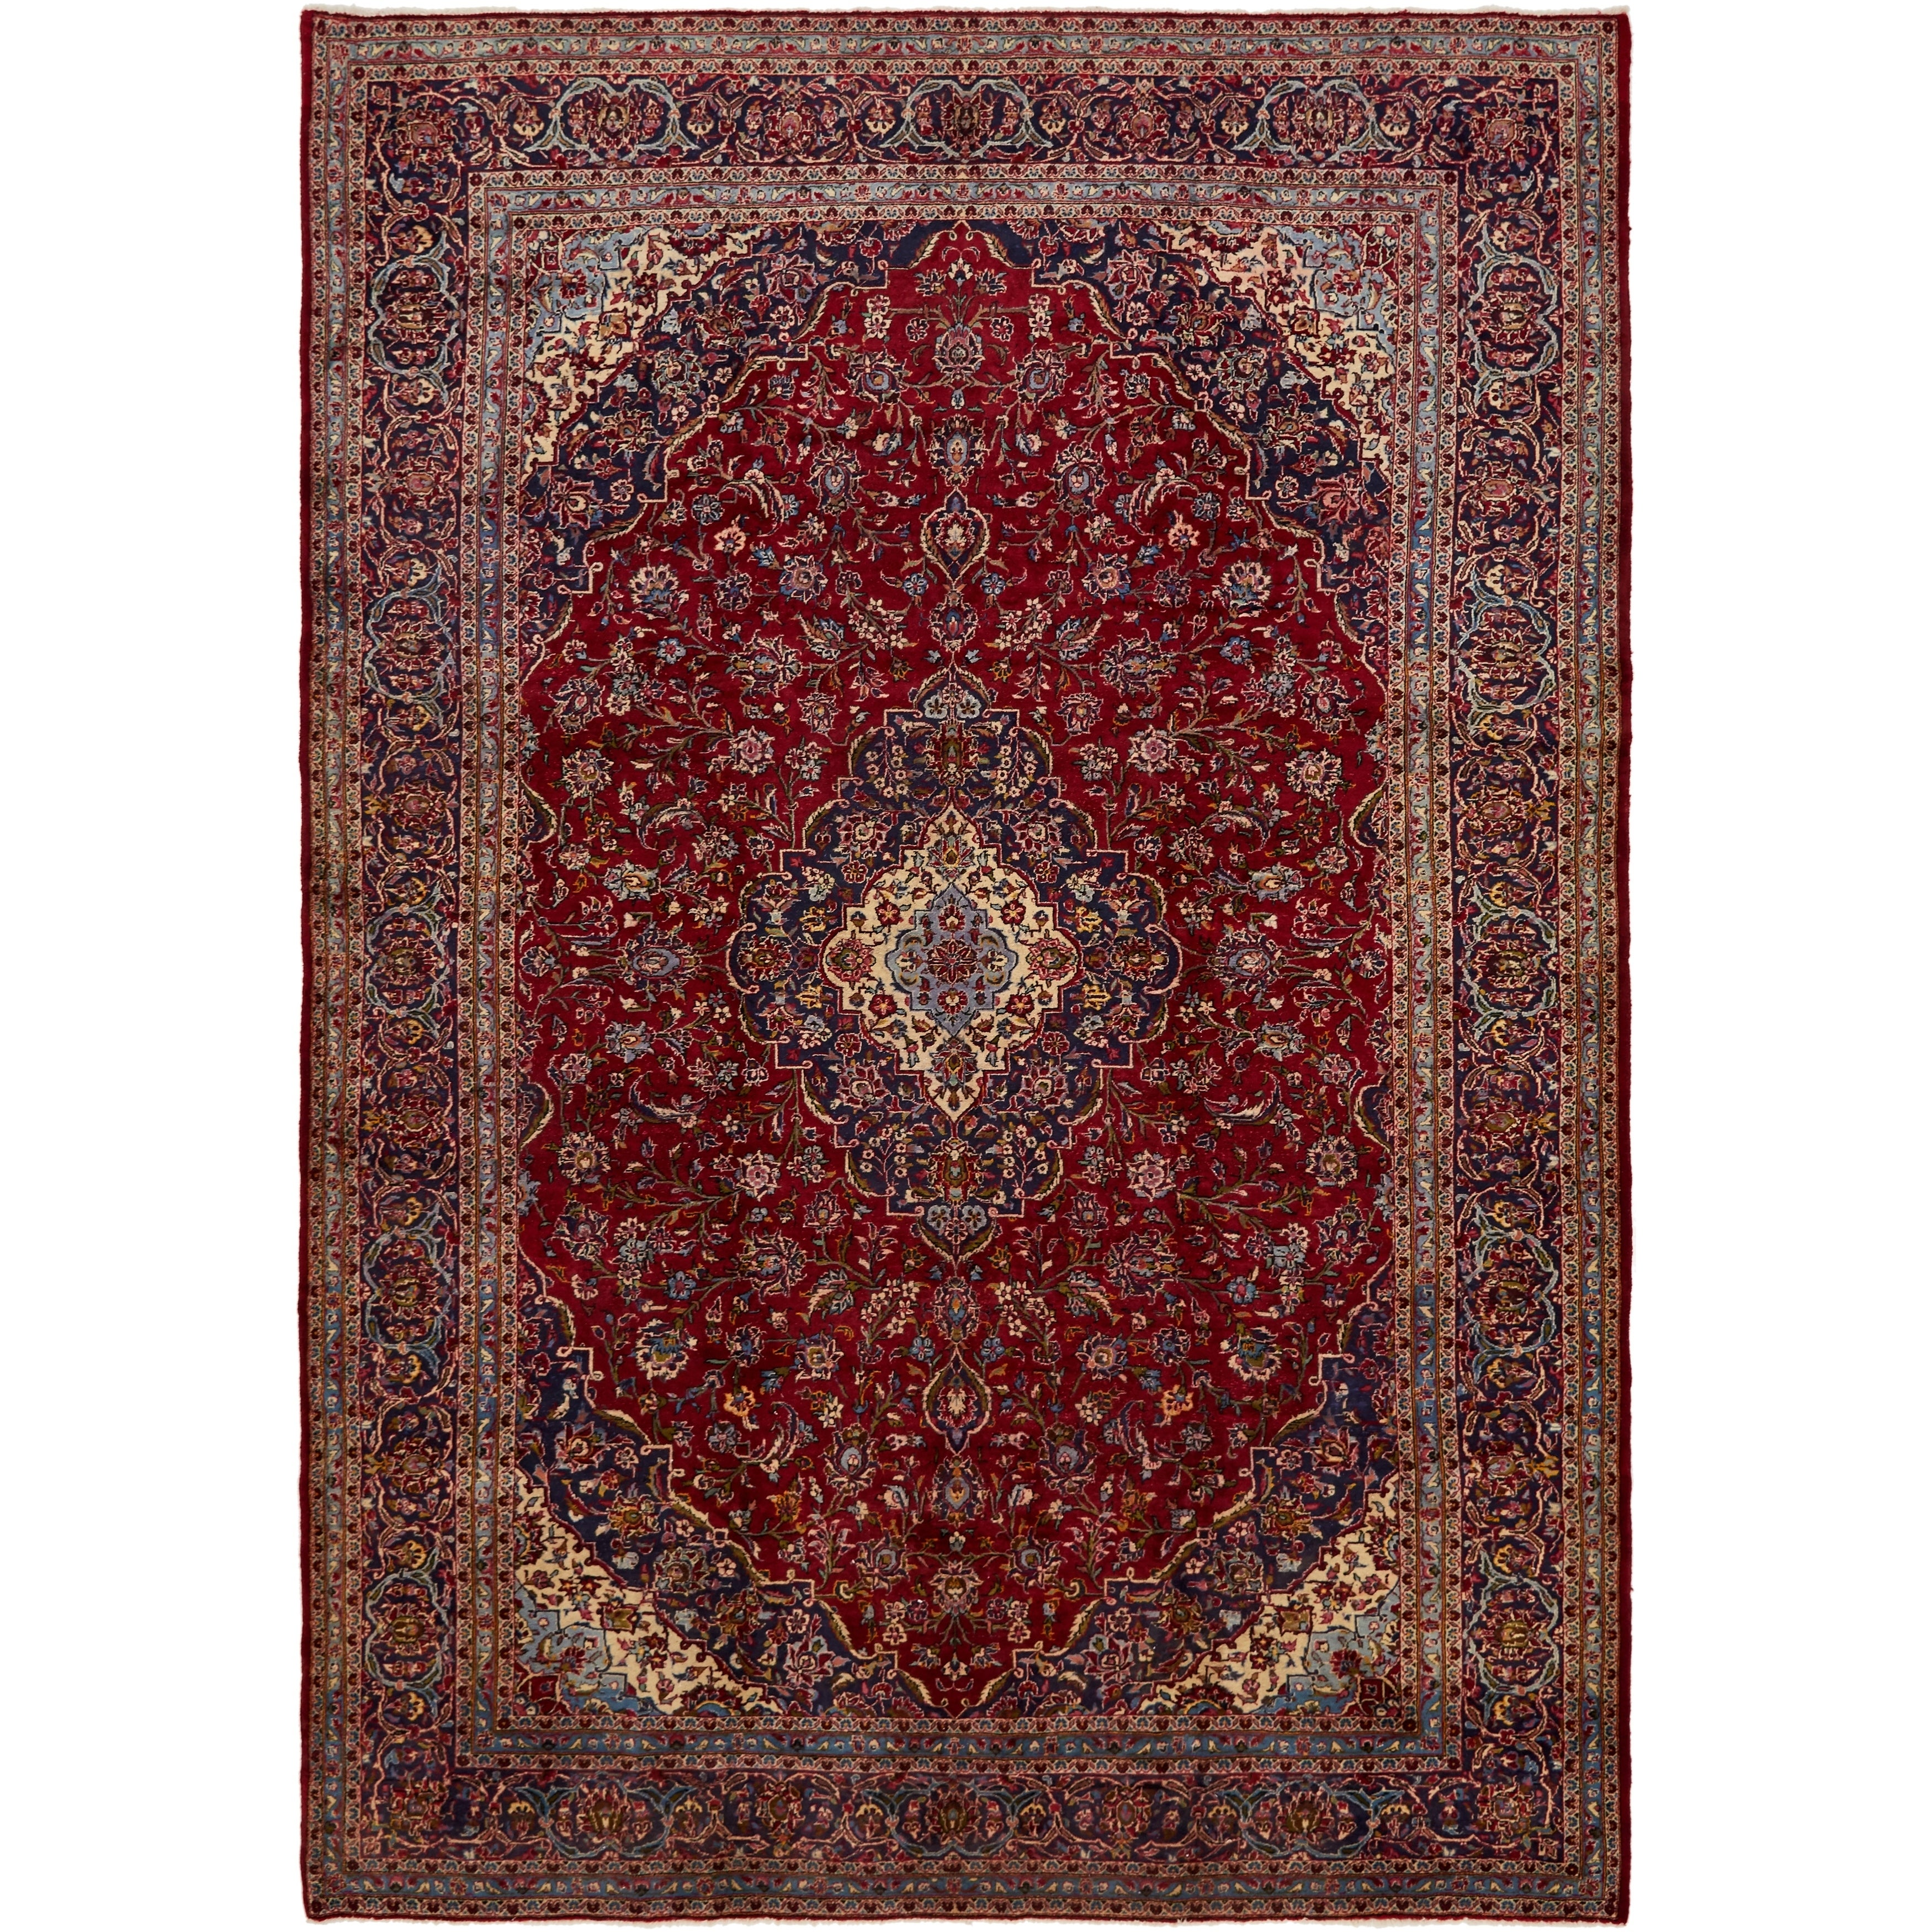 Hand Knotted Kashan Semi Antique Wool Area Rug - 9 8 x 13 8 (Red - 9 8 x 13 8)